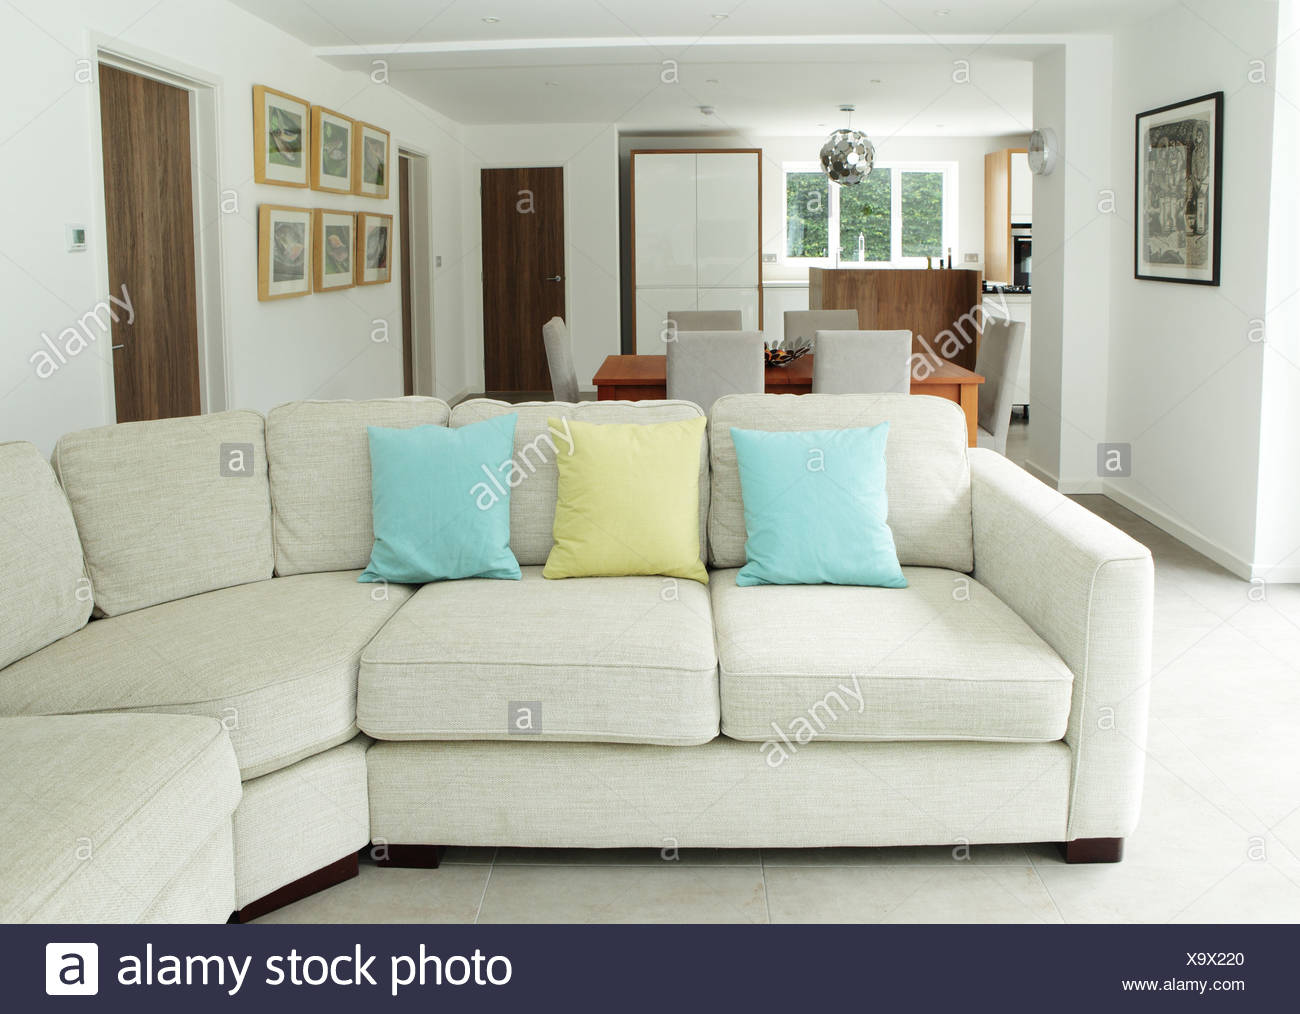 Sofa in living area - Stock Image